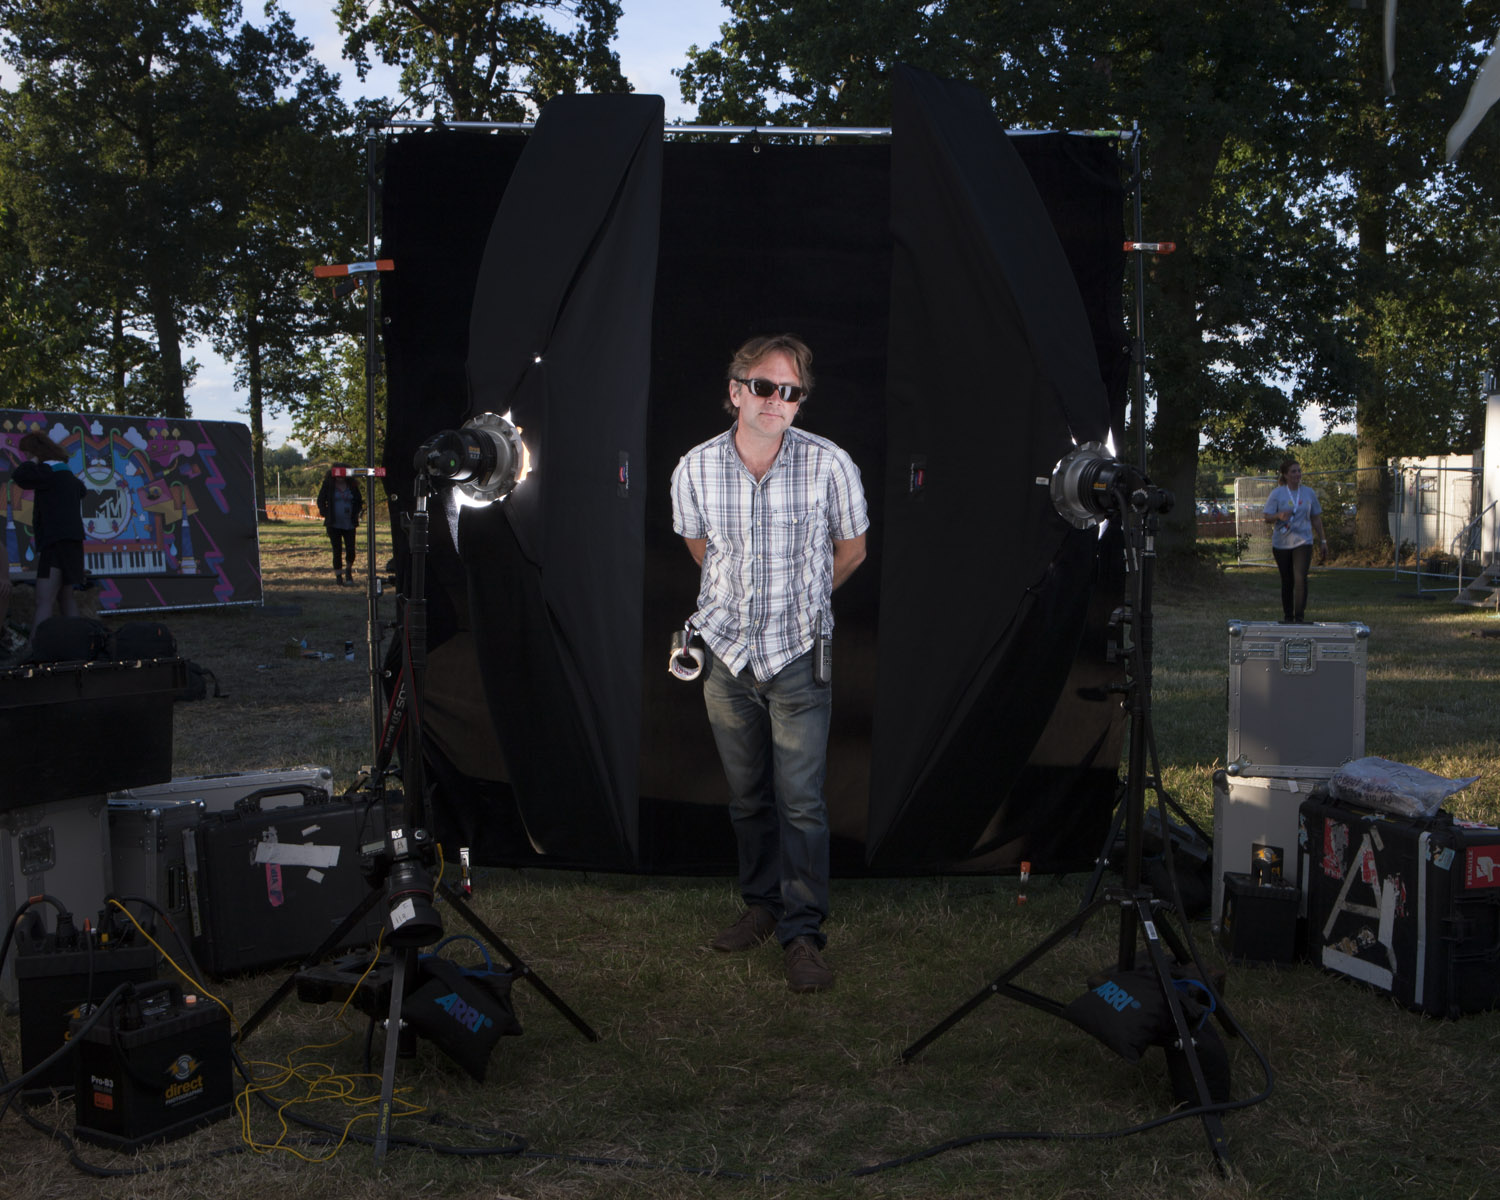 Will Amlot - Professional Photographer - Founder of Will Amlot Photography